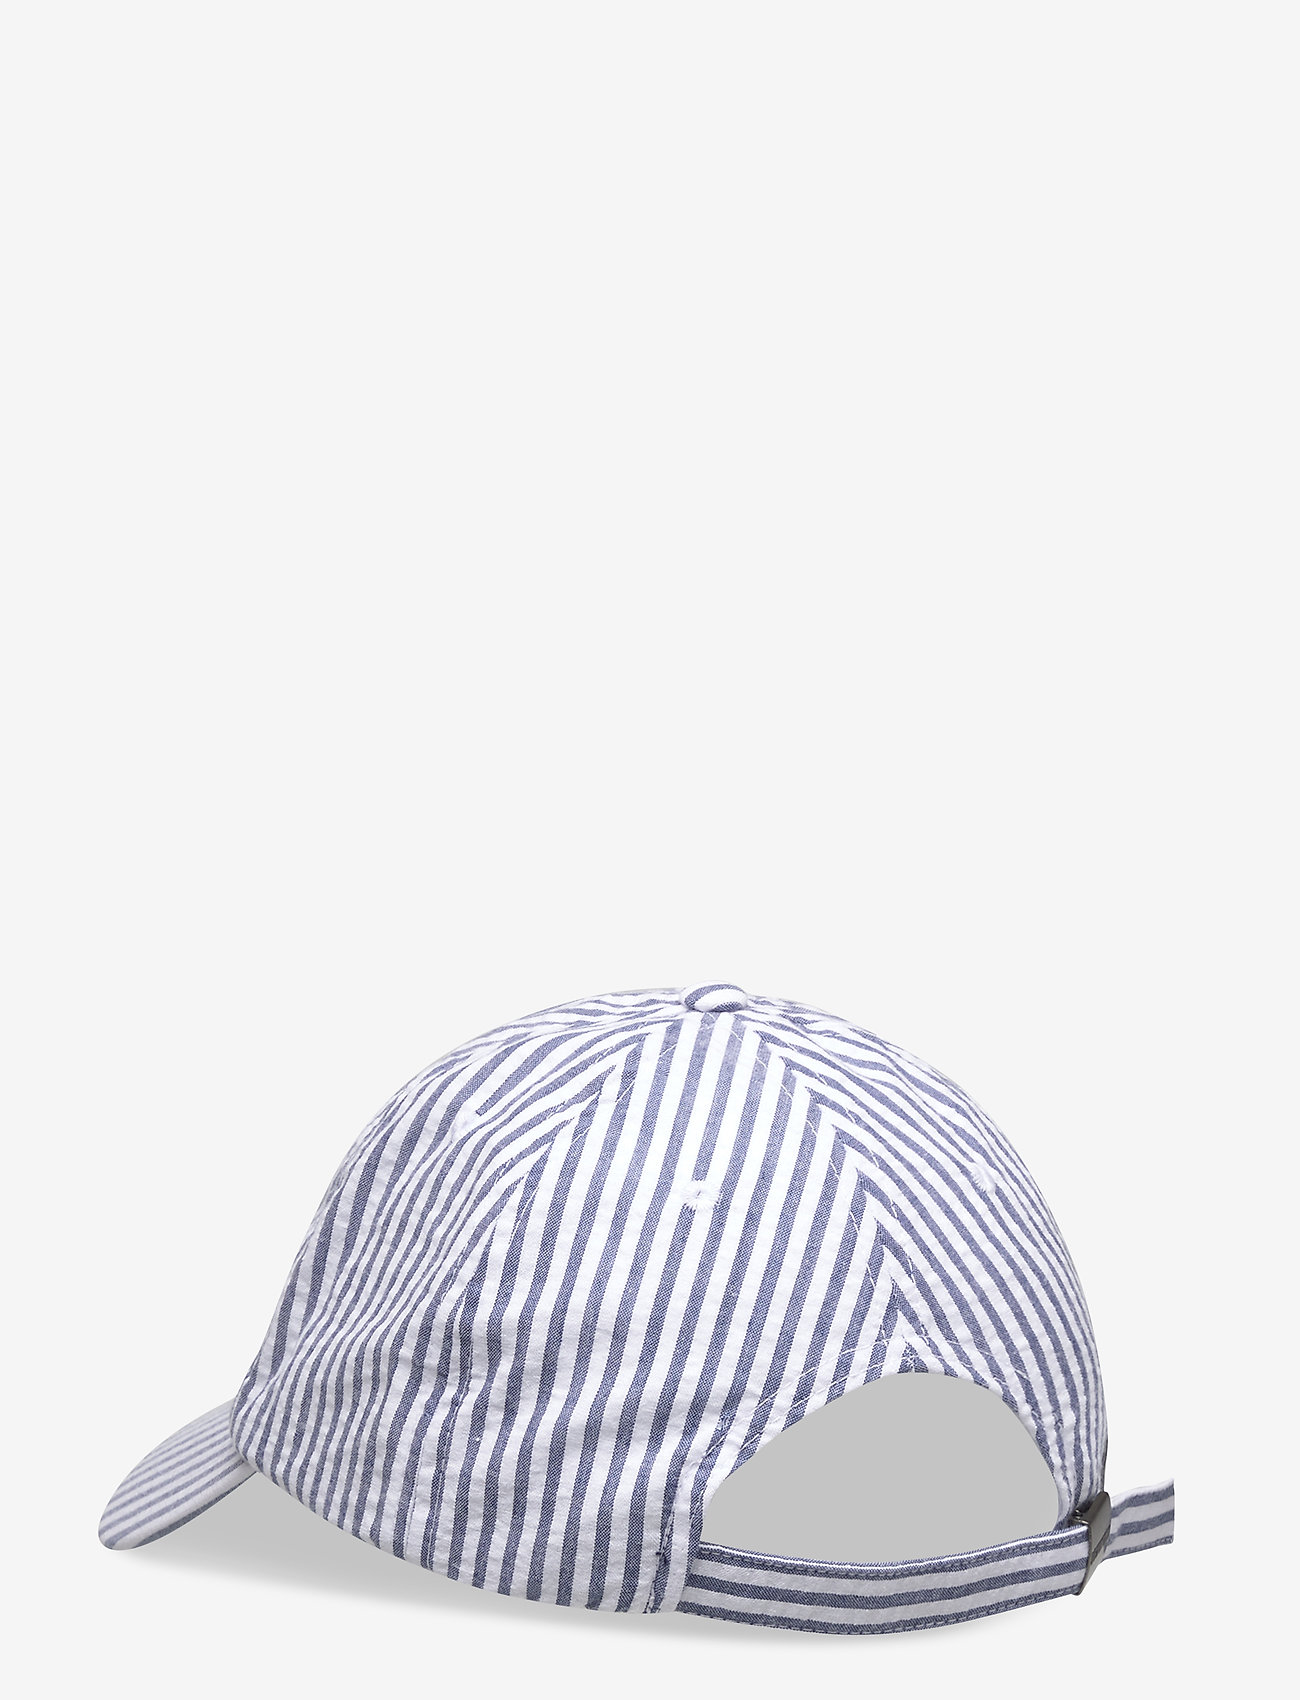 York Cap (Blue/white Stripe) (31.85 €) - Lexington Clothing 0DC7k